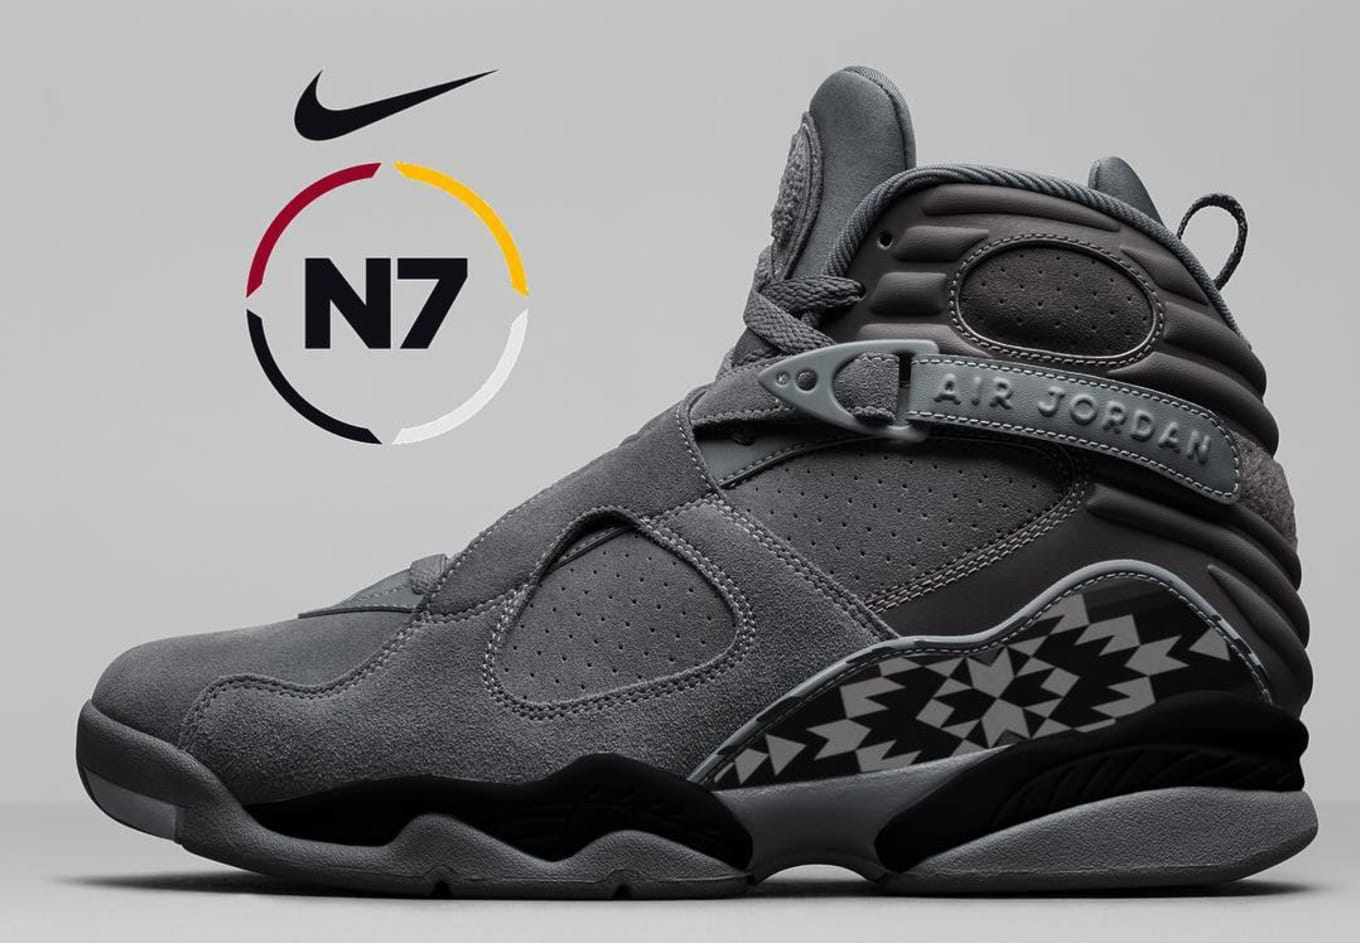 59df4fbc502be5 Air Jordan 8 Retro  N7  Release Date 11 7 19 CQ9601-001